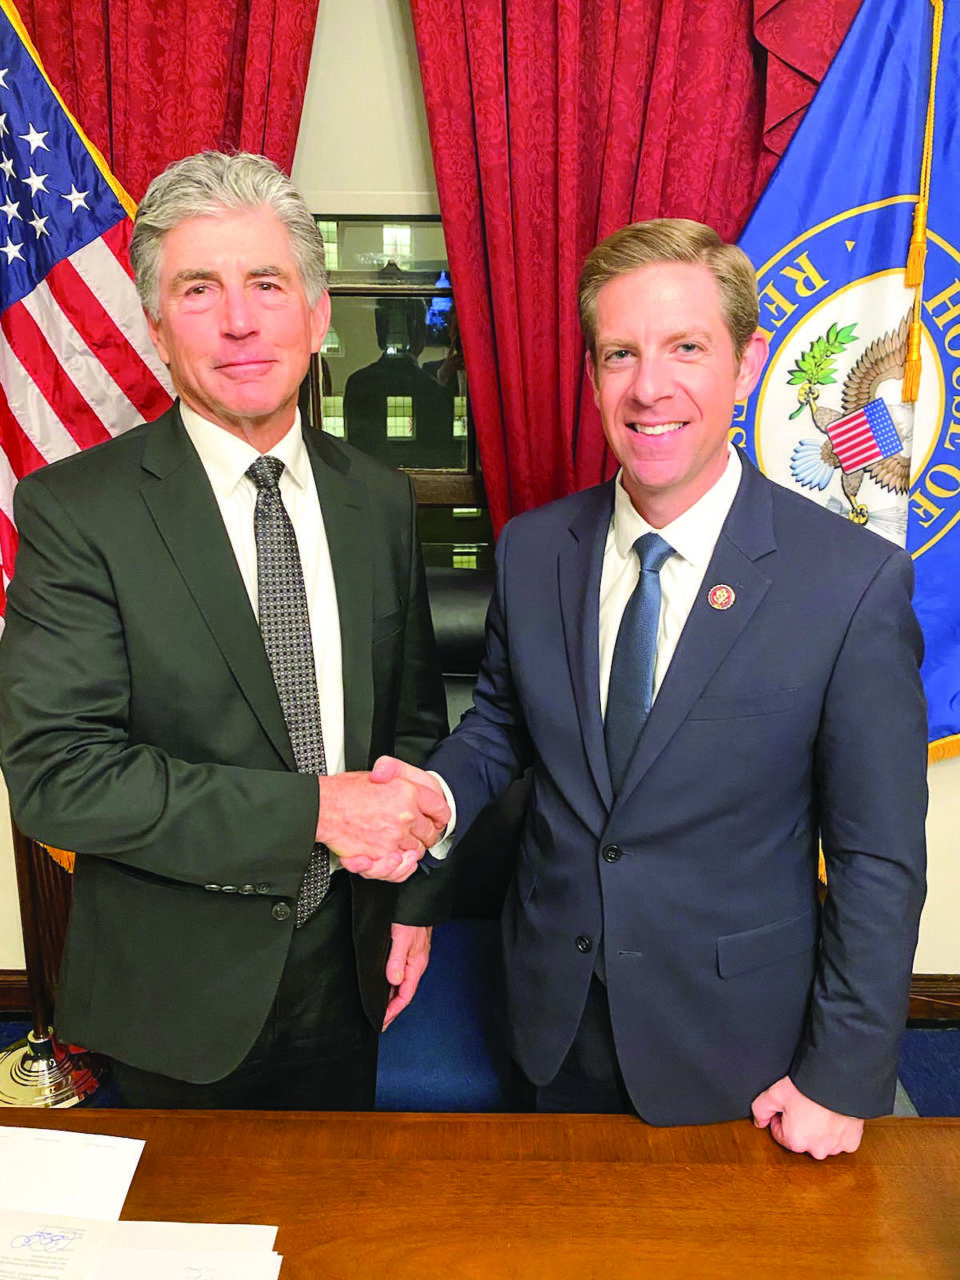 Mike Levin brought Dr. Pat Davis as his guest for President Donald Trump's State of the Union address. Davis lost three members of his family in a bluff collapse on an Encinitas beach.